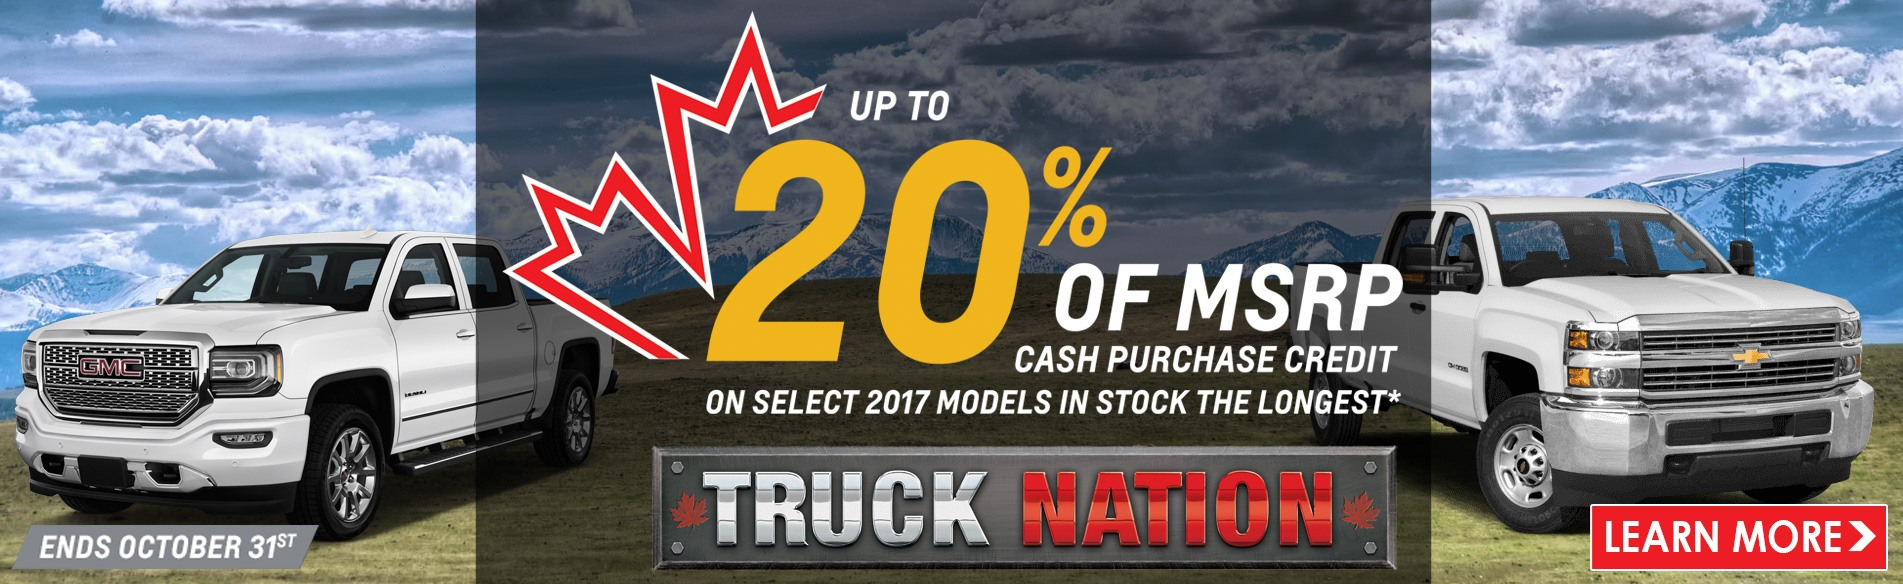 Enjoy 20% off MSRP cash purchase credit on select remaining 2017 cars, trucks and SUVs plus great deals on new trucks in Georgetown from Georgetown Chevrolet Buick GMC